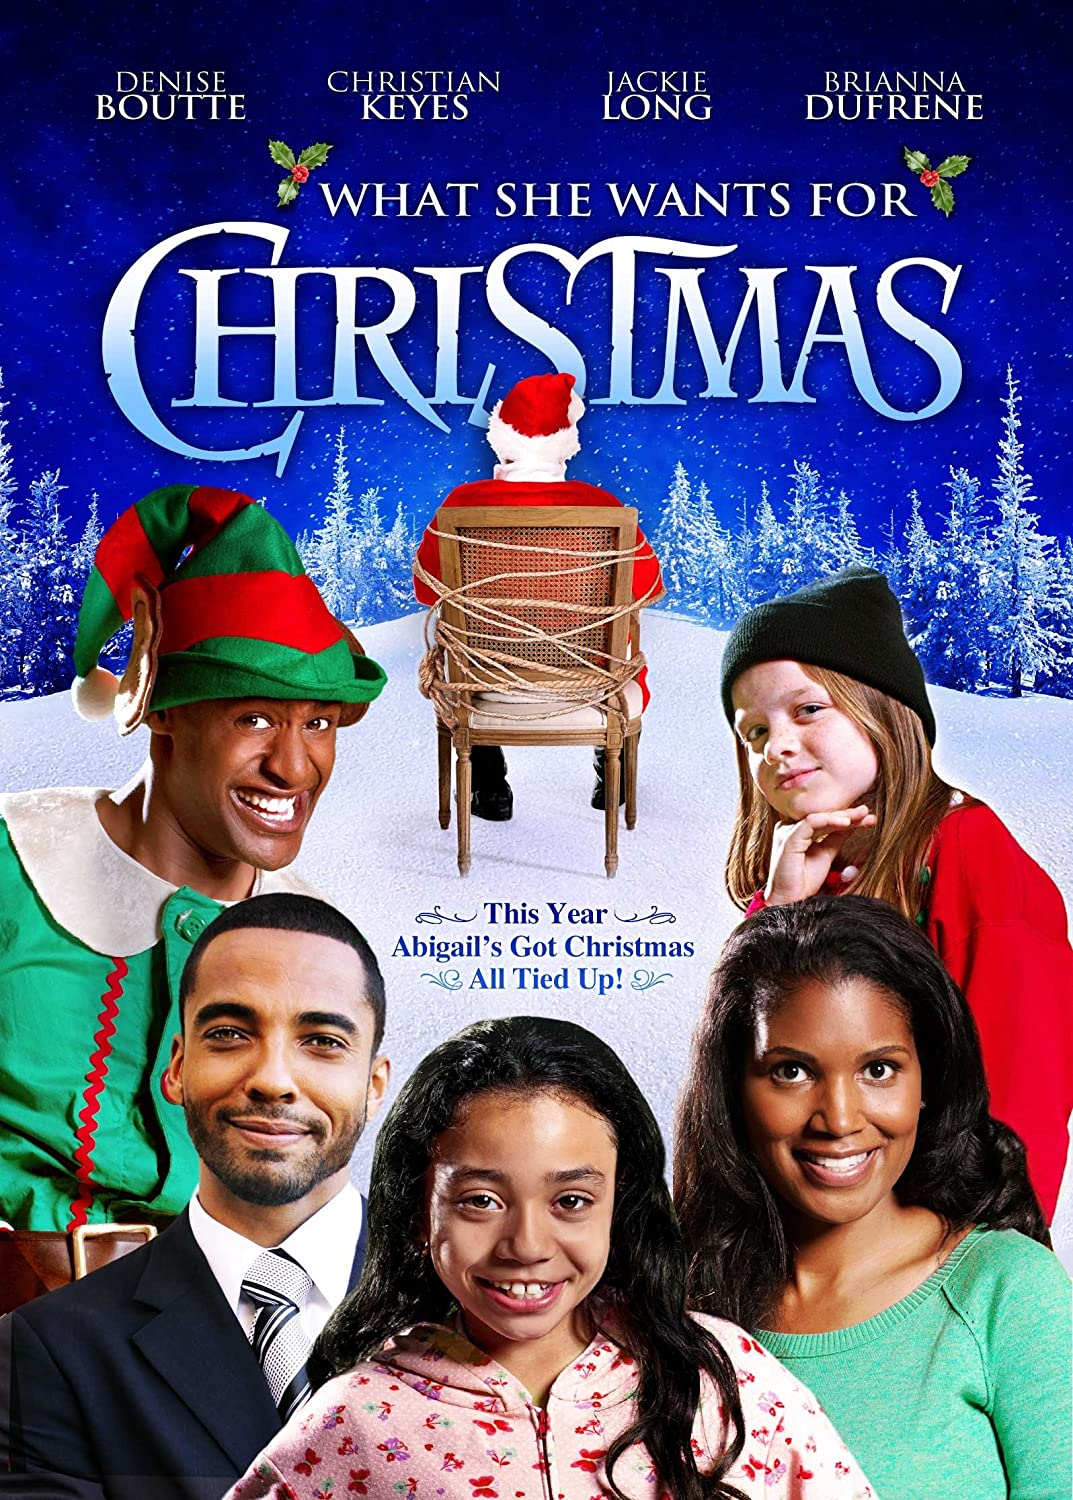 Amazon.com: What She Wants for Christmas: Denise Boutte, Christian ...